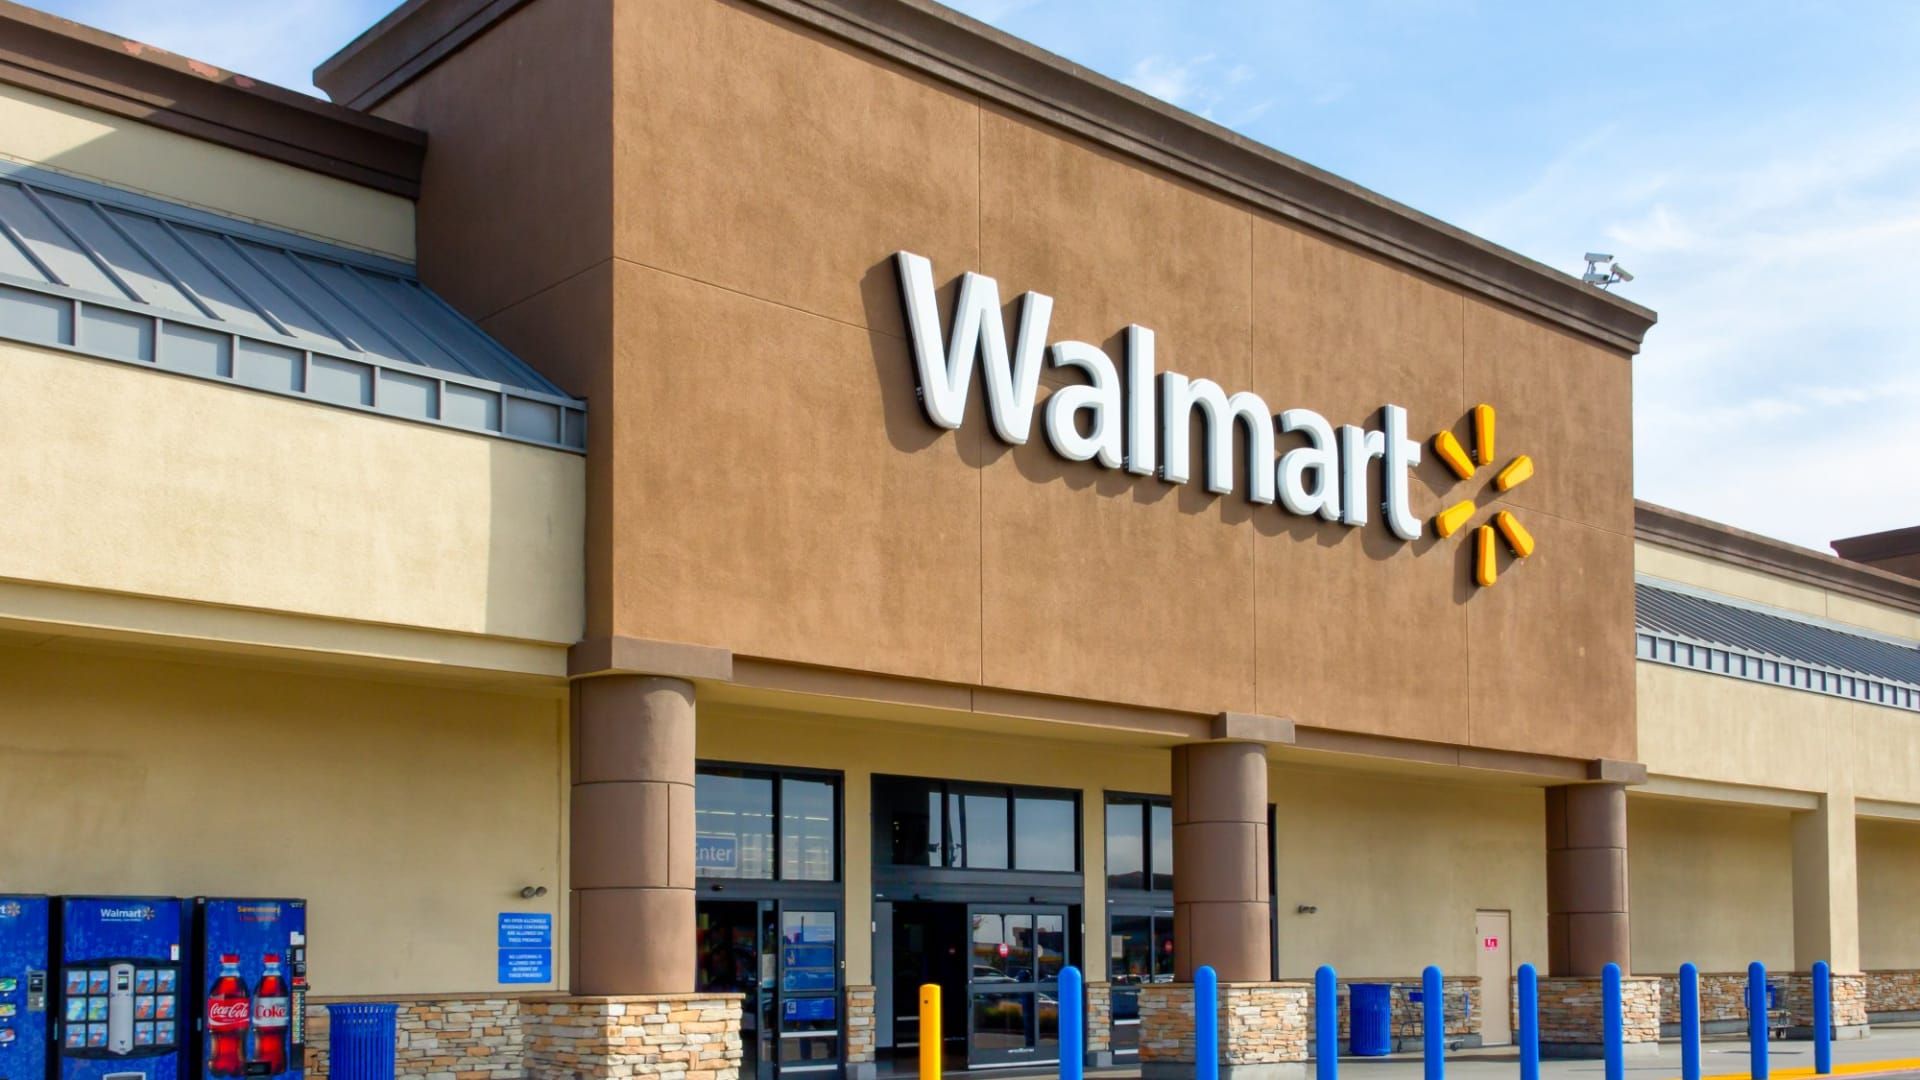 Walmart Just Gave Its Customers Another Good Reason to Cancel Their Amazon Prime Membership